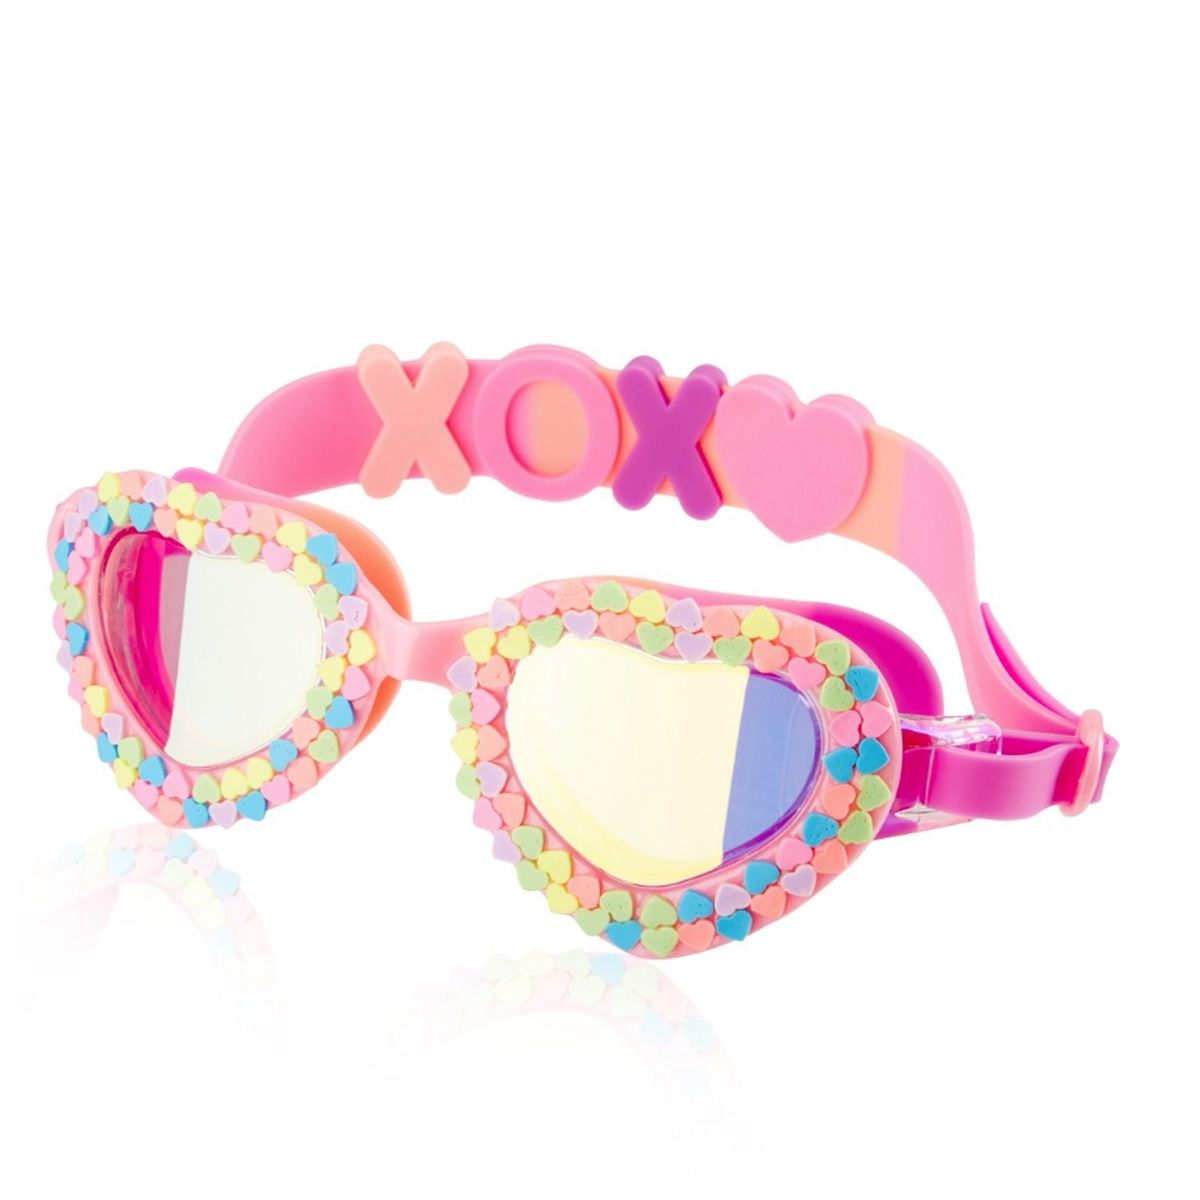 c0ae4632c18 Be your own valentine with the Bling2O Kids  Candy Hearts Swim Goggle.  Featuring candy